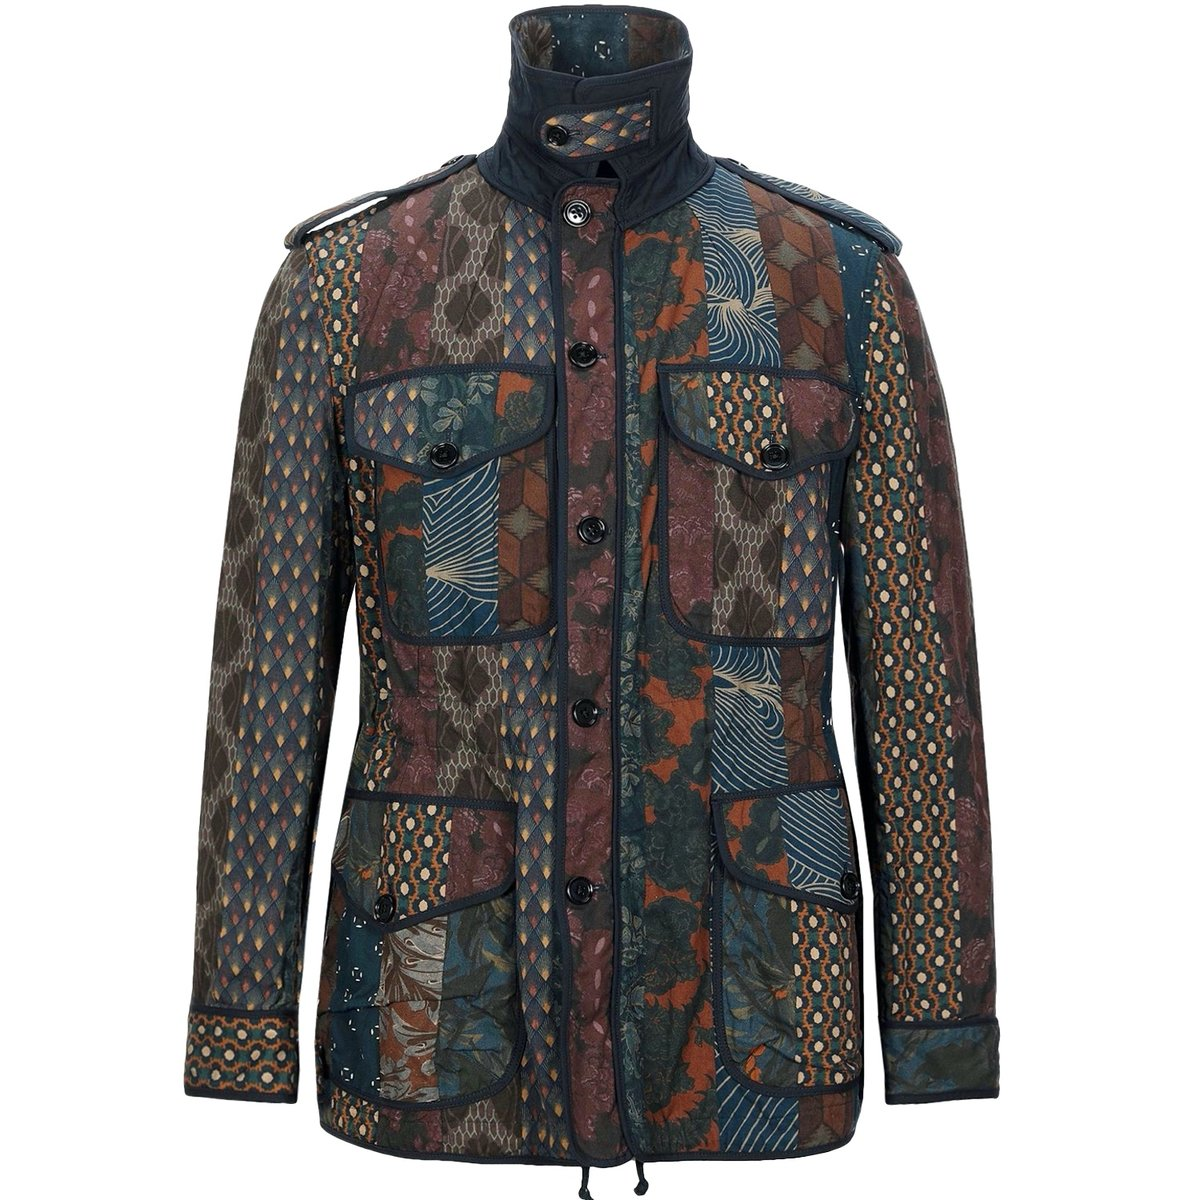 Dries Van Noten Patchwork Print Safari Jacket.jpg